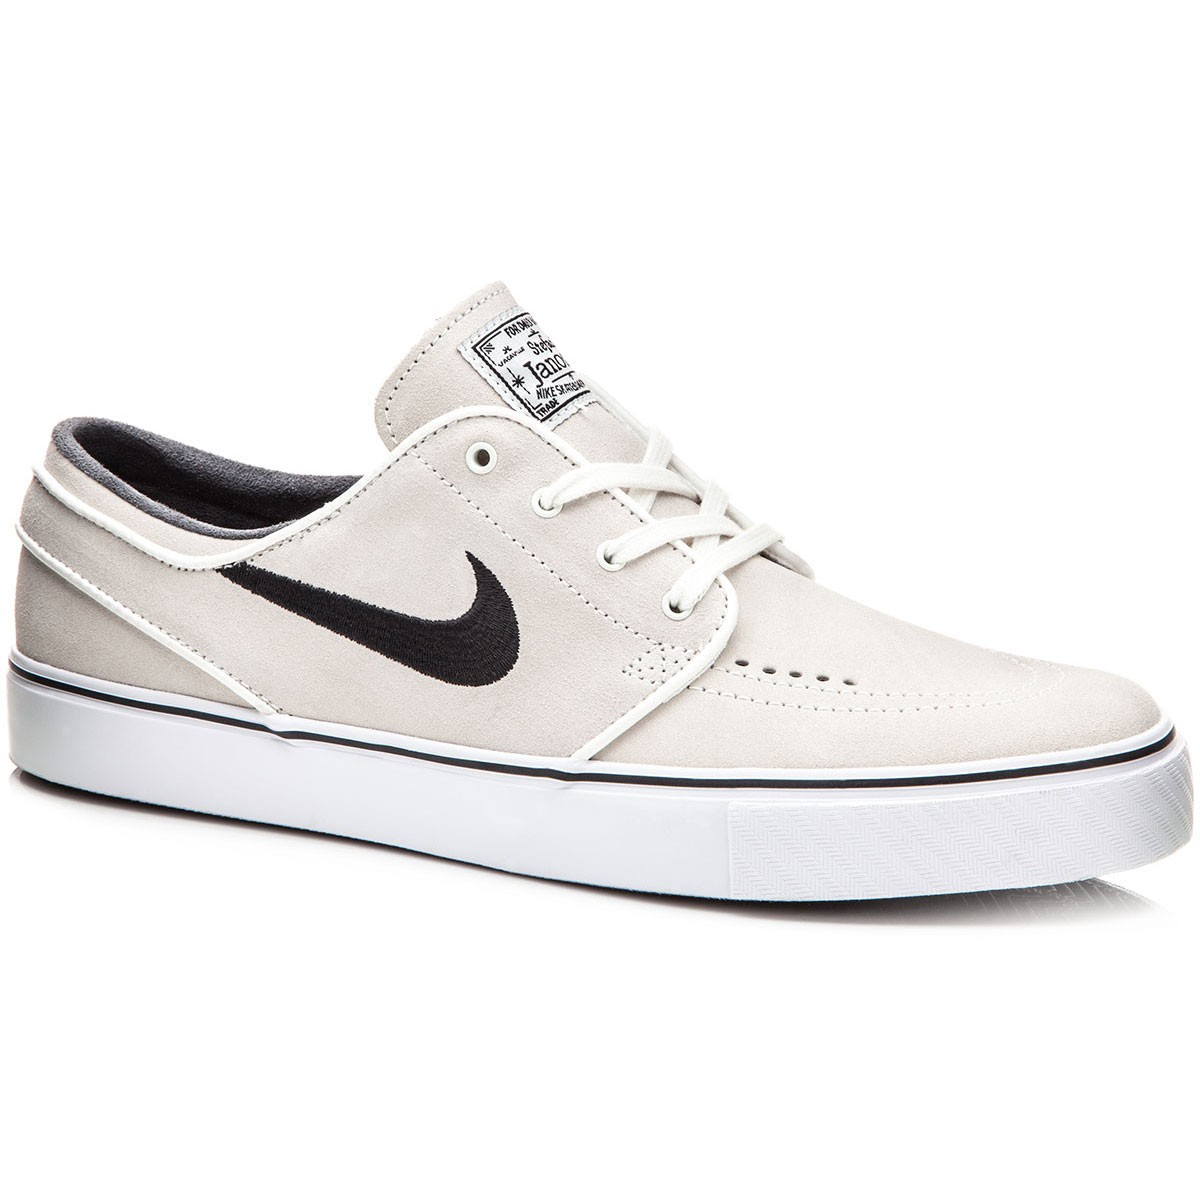 nike sb stefan janoski shoes for sale 2fb3d55ce